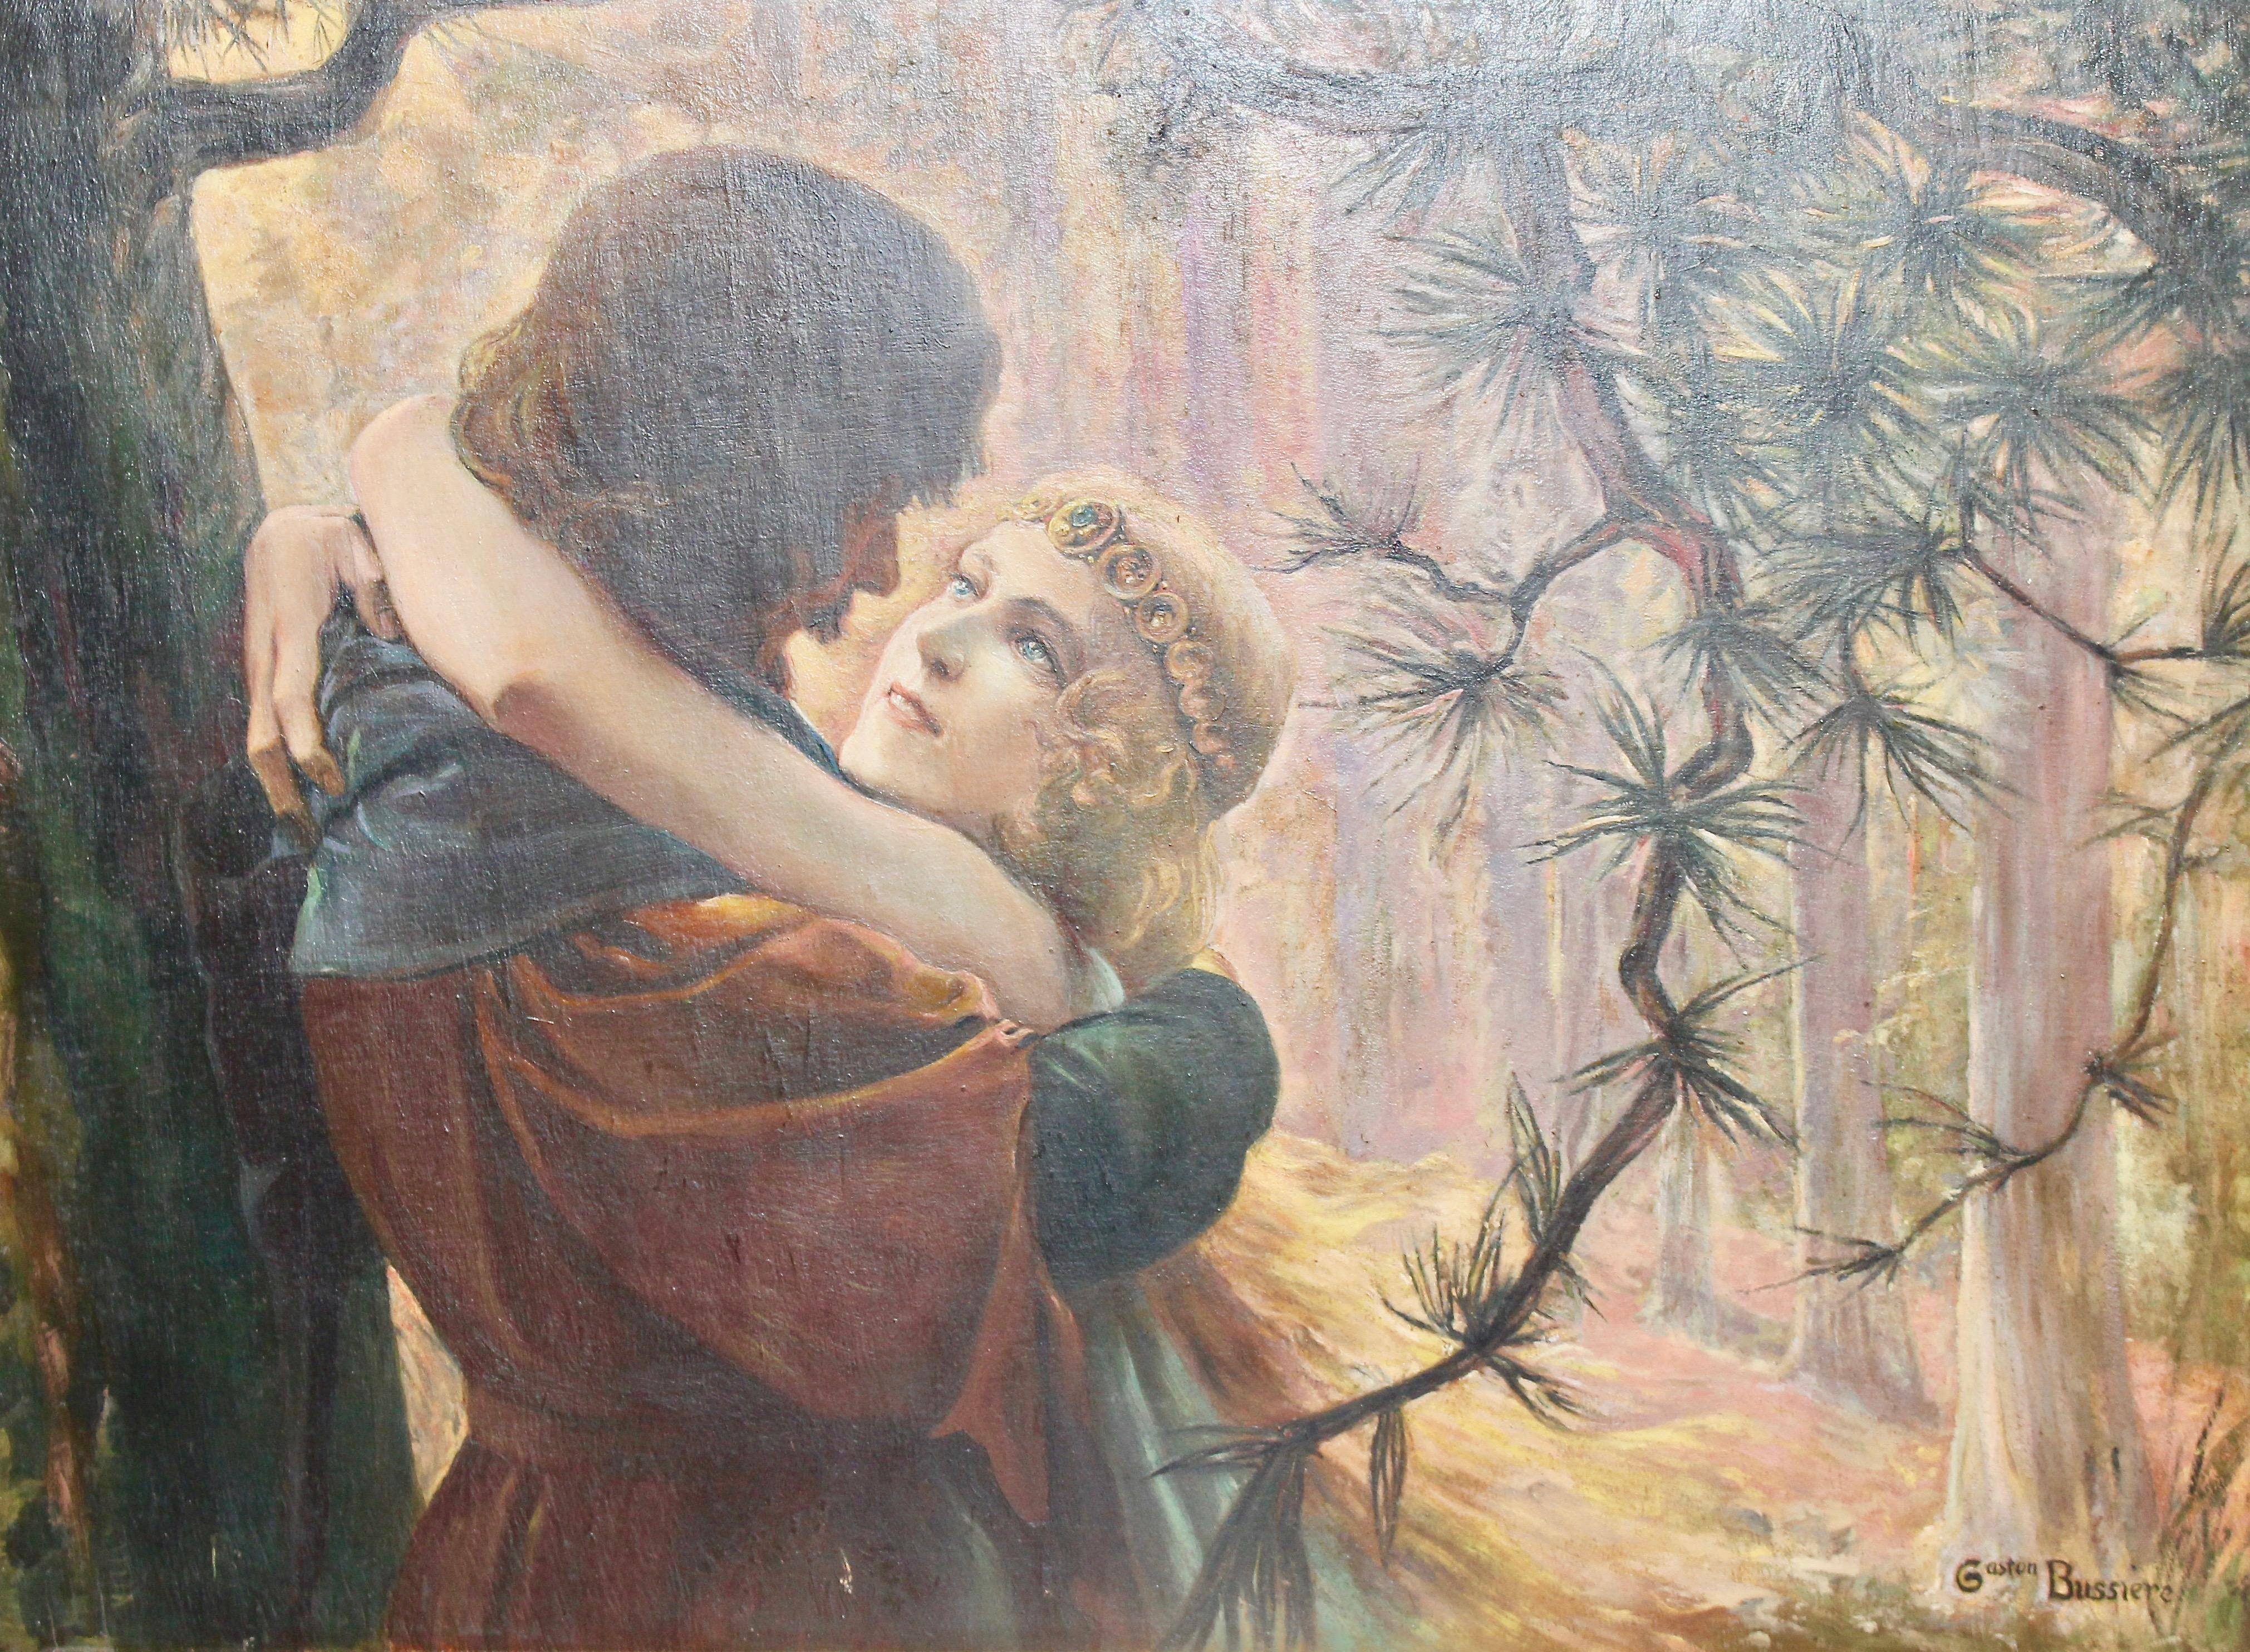 Art Déco Painting, ca. 1910, oil on cardboard. Romantic love scene in the forest